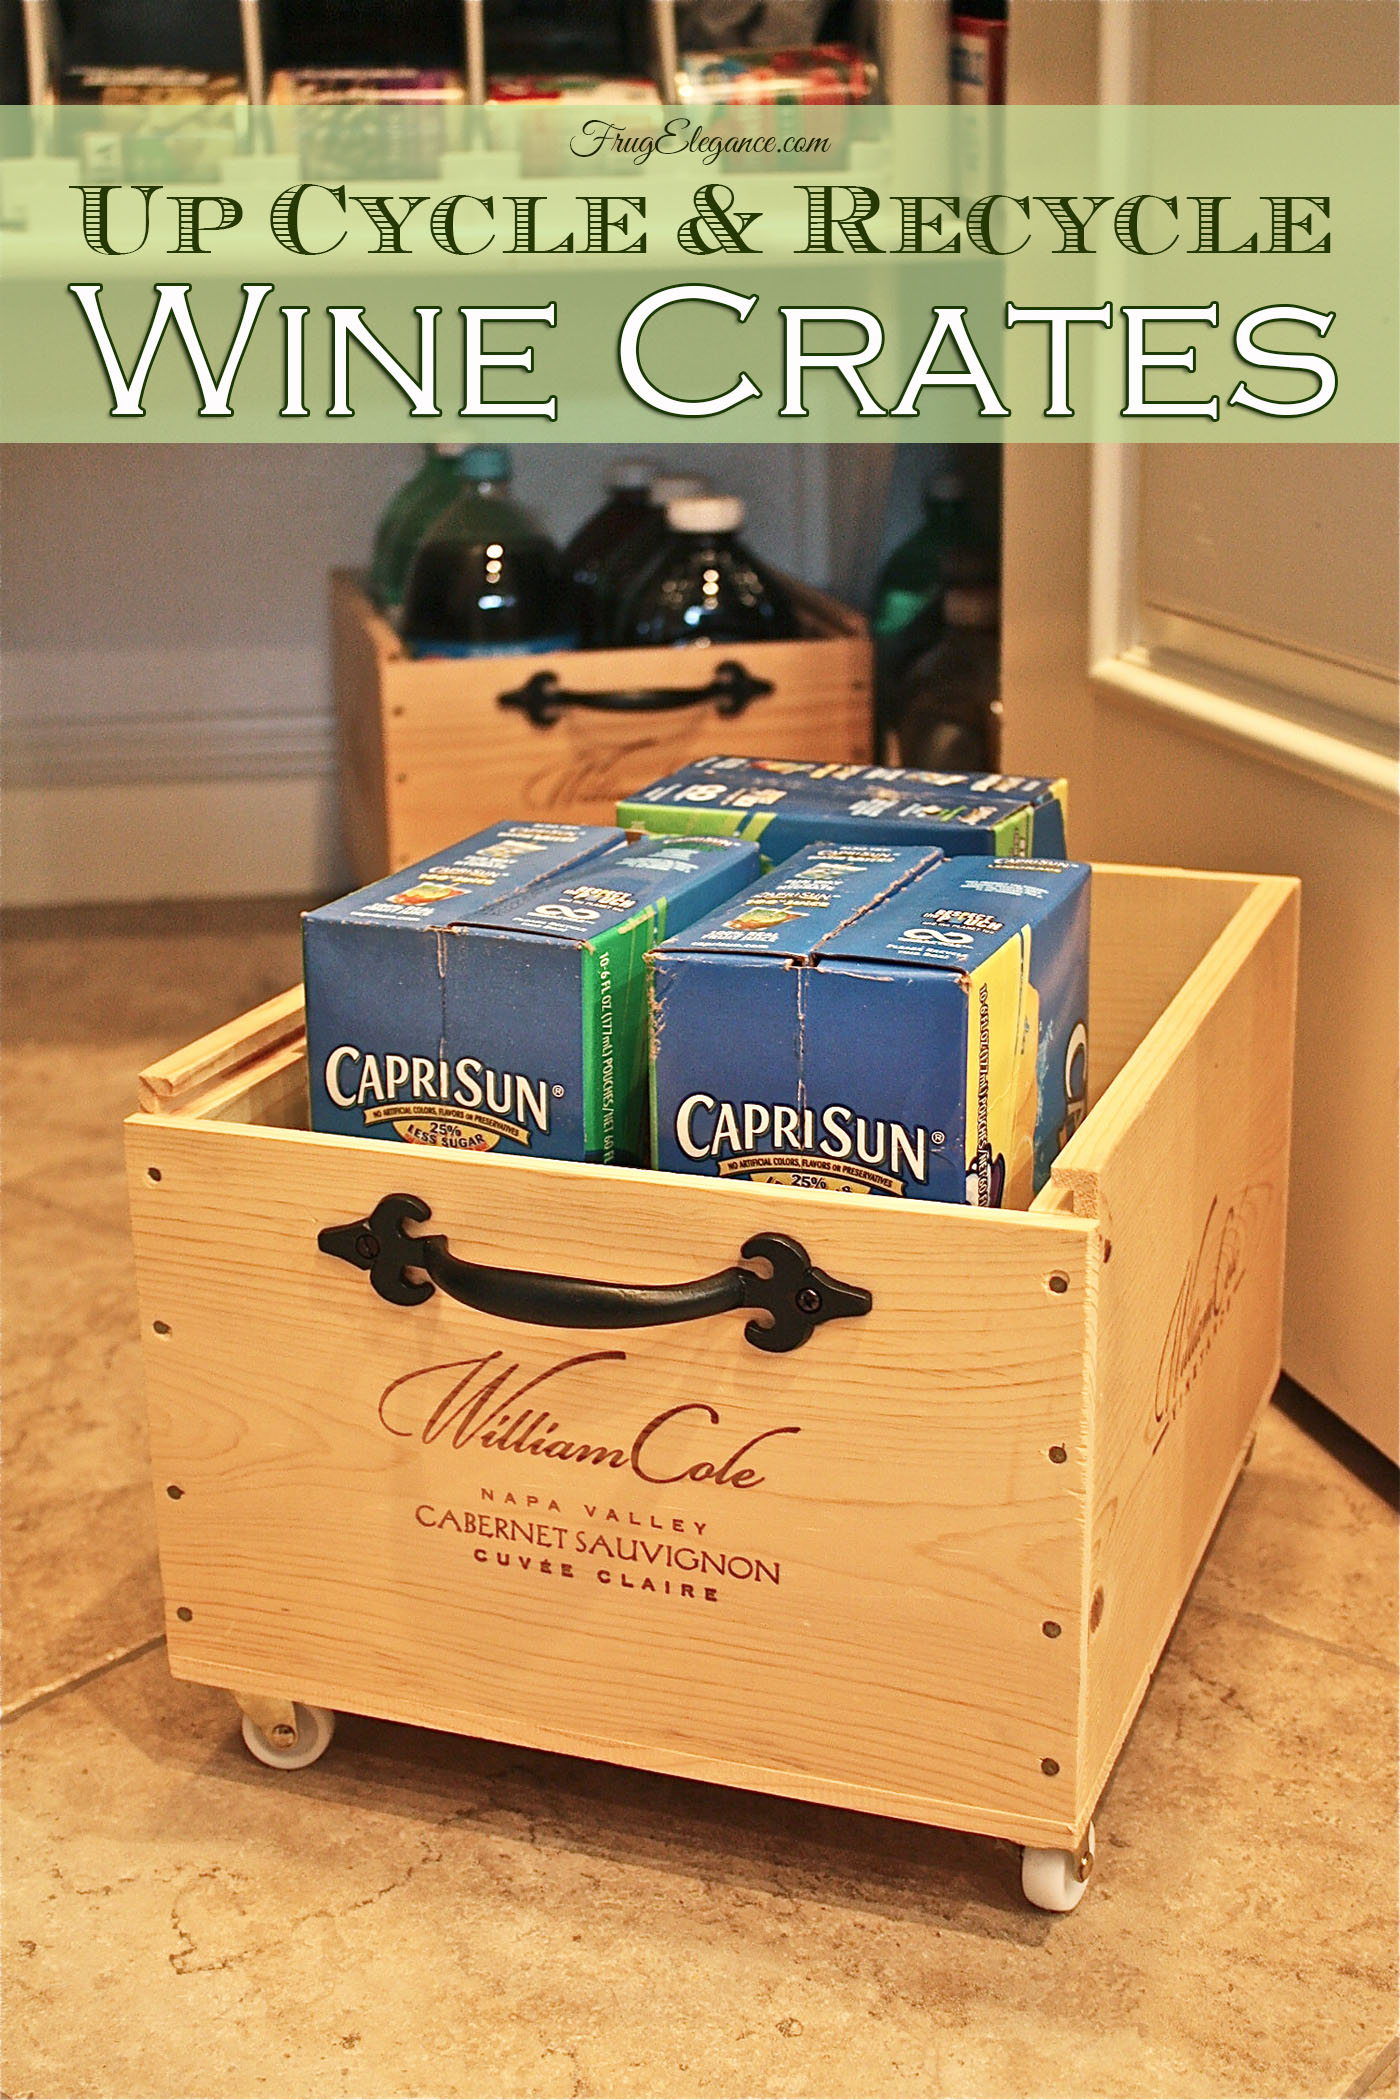 Wine Crates Up Cycle Amp Recycle With Wheels Frugelegance